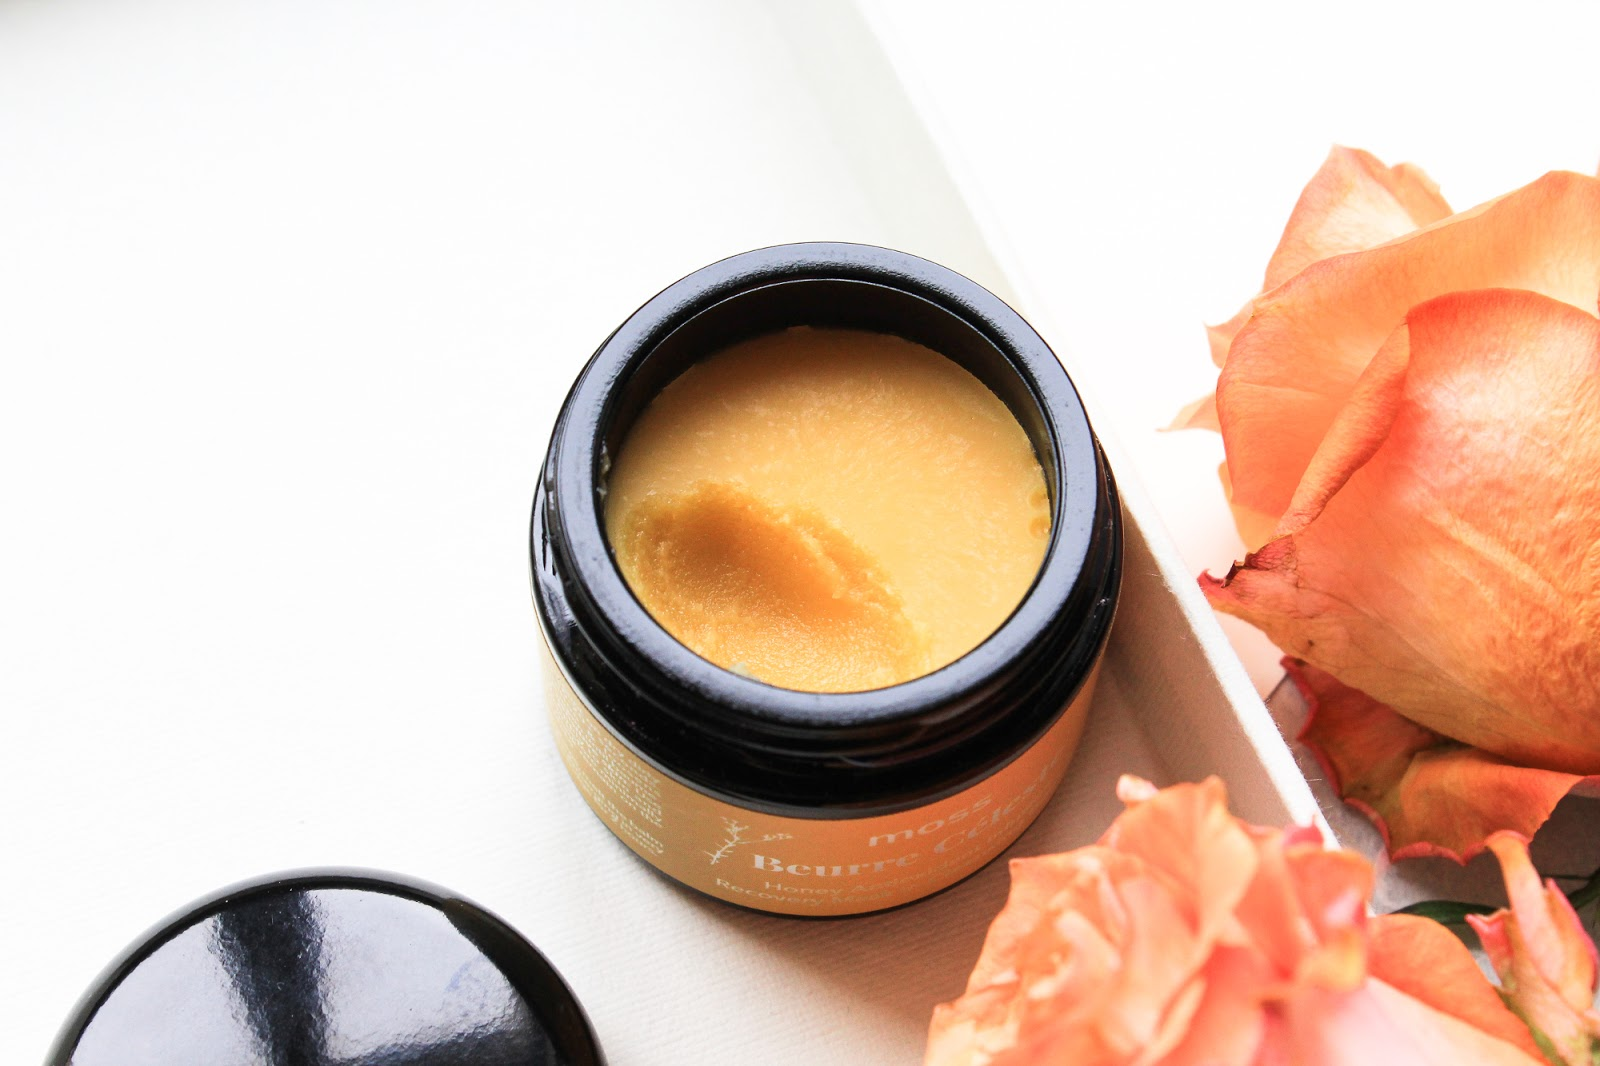 MOSS Beurre Céleste Honey Antioxidant Infusion Recovery Mask in Cleansing Baume. Cleansing Balm. Boxwalla Beauty Box June 2018. Buttery consistency.